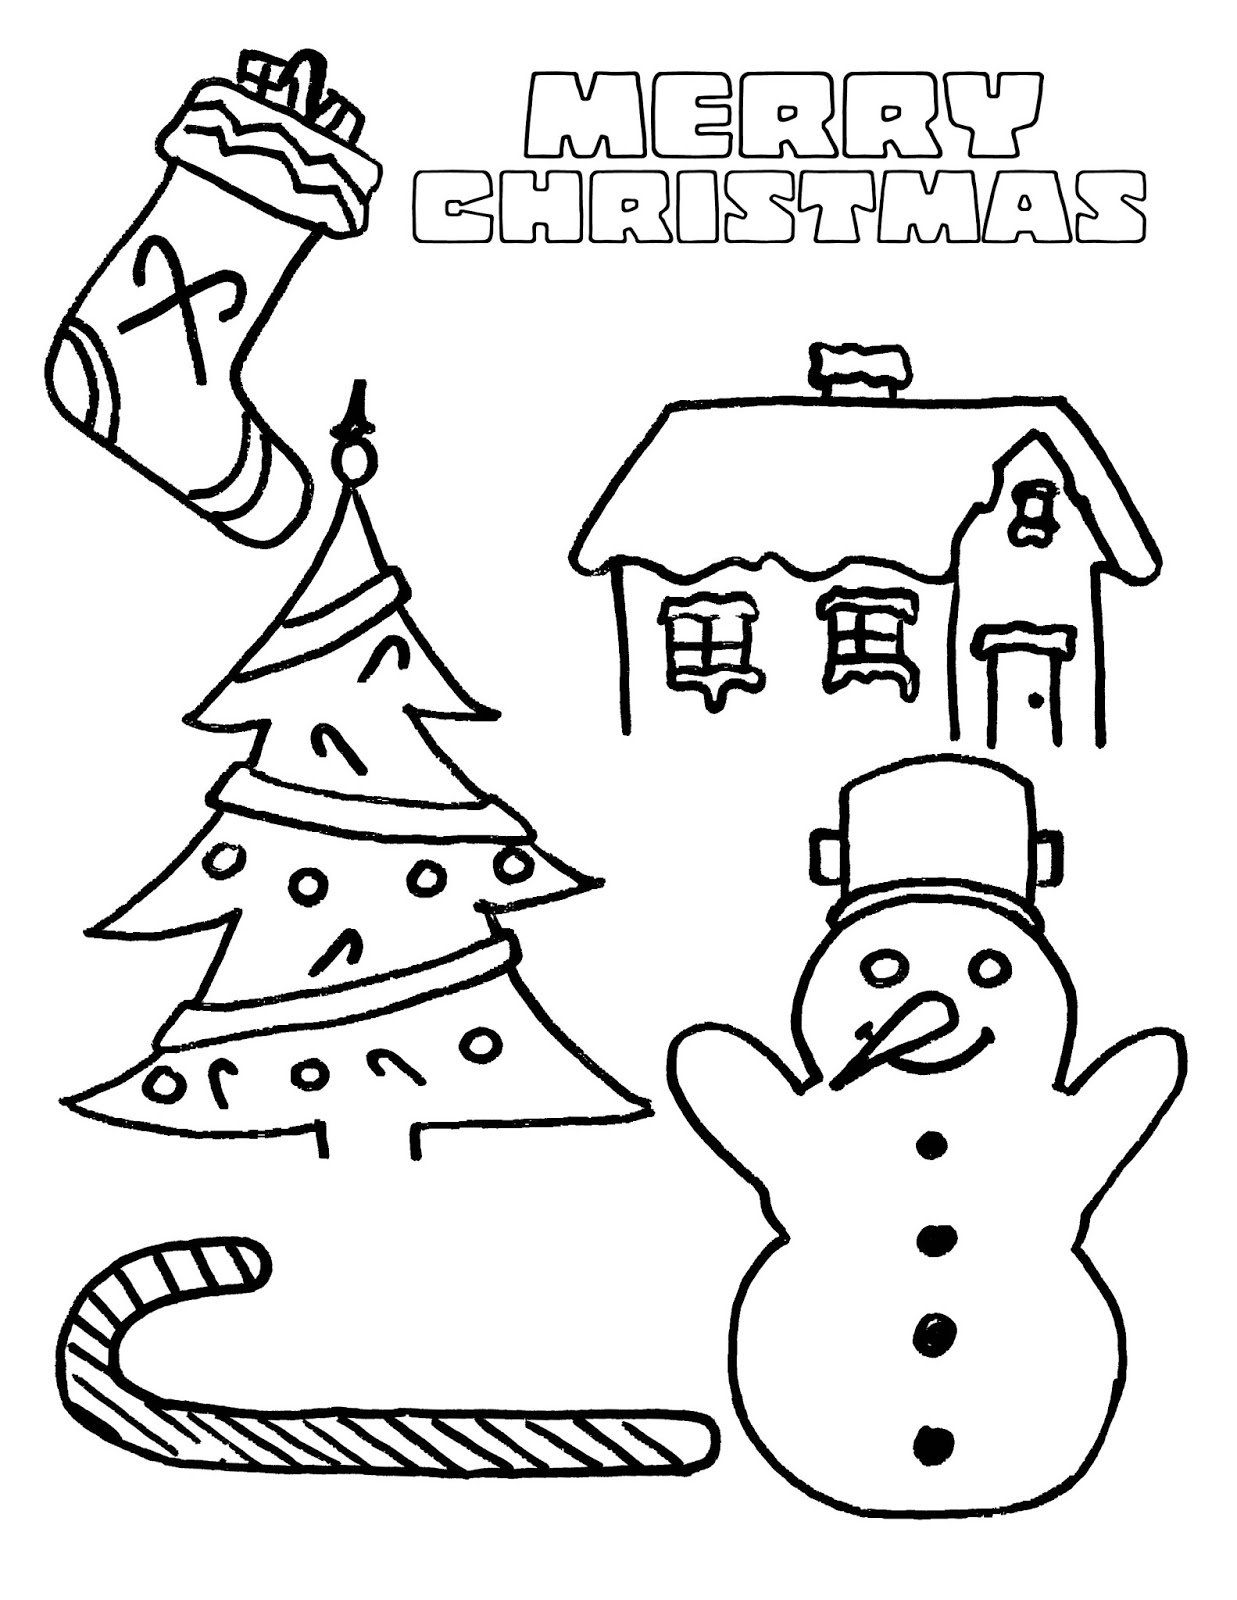 Christmas Colouring Pages Kindergarten With Coloring Snowman Free And Printable